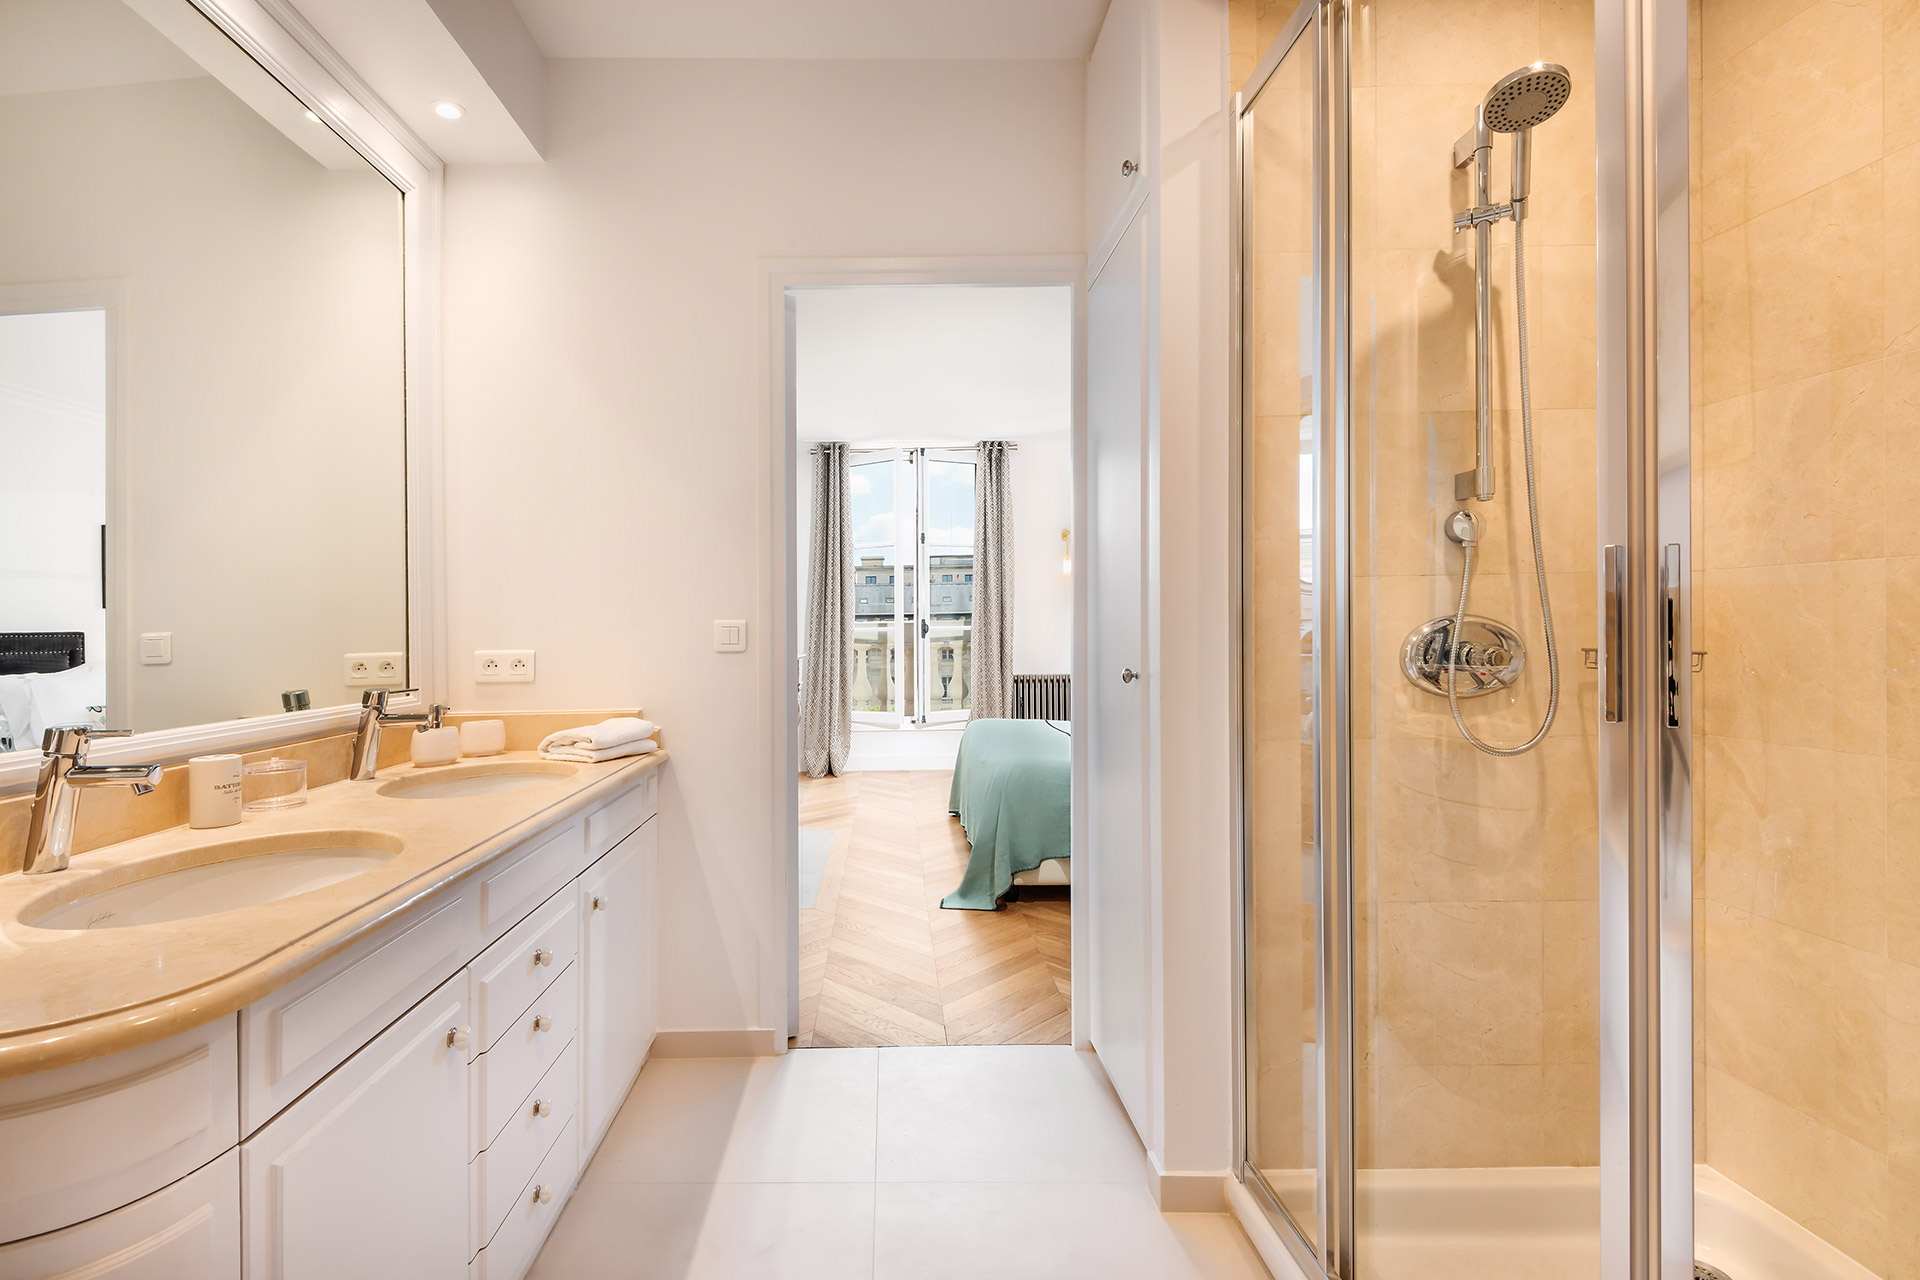 Bathroom 1 shower in the Chevalier vacation rental by Paris Perfect